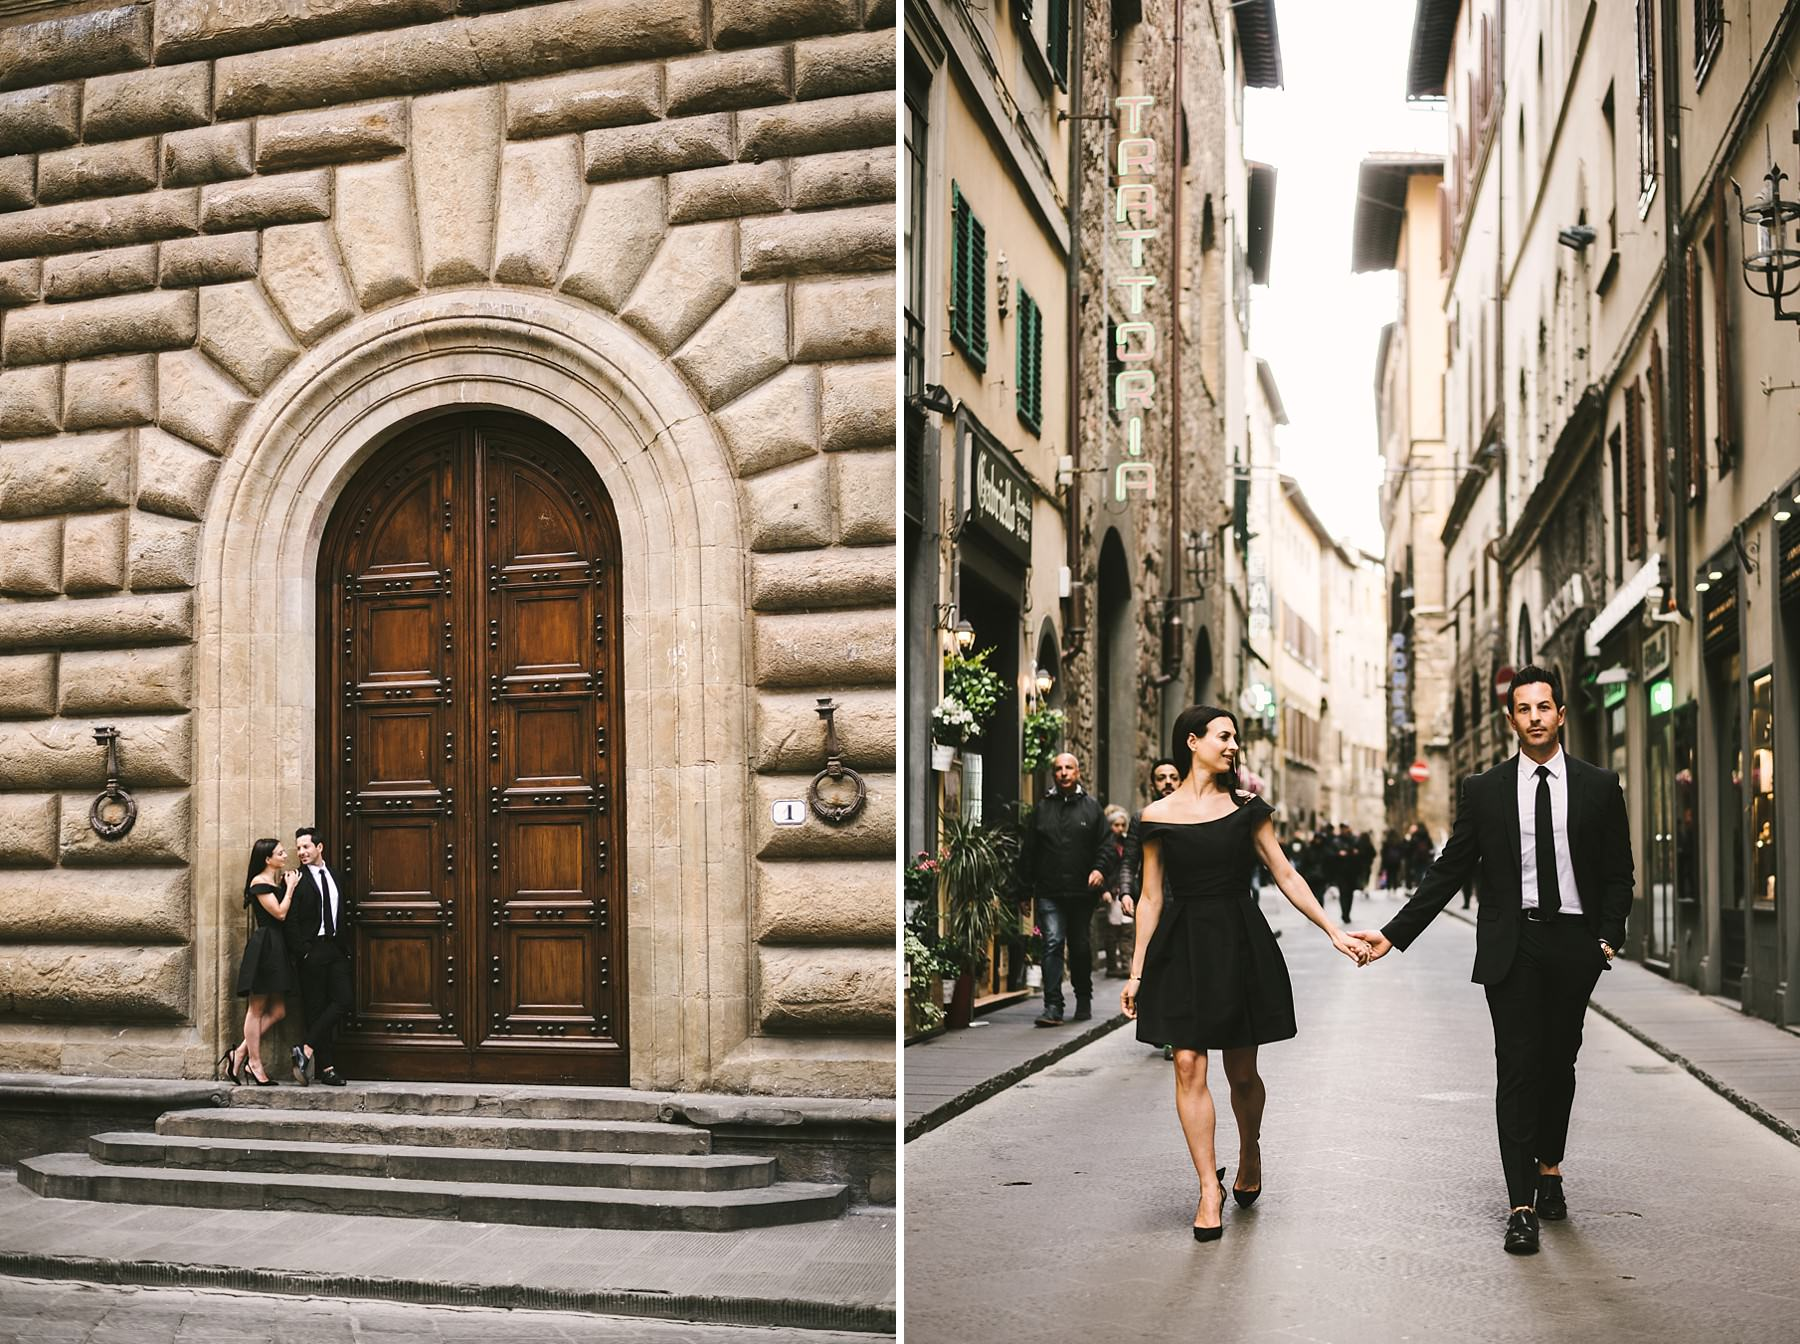 Elegant and unique romantic walk tour engagement photo shoot in the heart of Florence near Palazzo Gondi and Old Palace